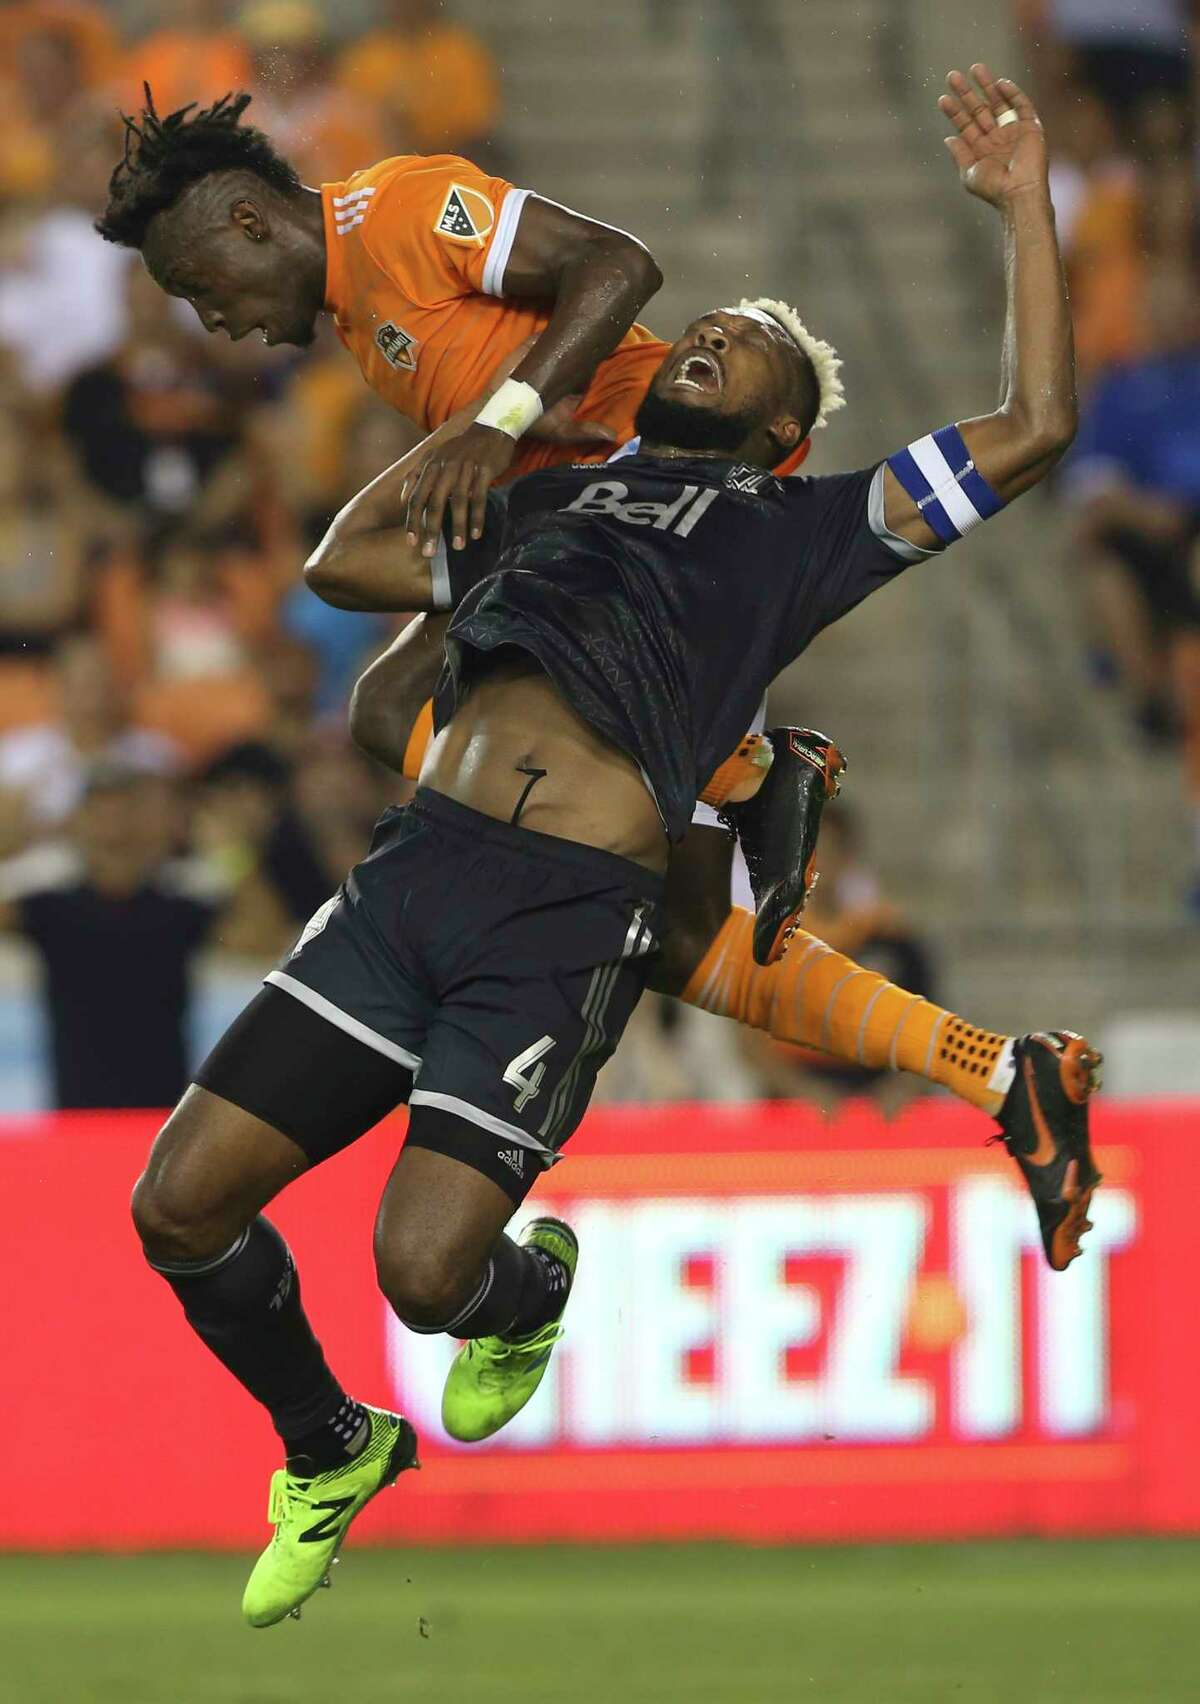 Houston Dynamo forward Alberth Elis (17) and Vancouver Whitecaps defender Kendall Waston (4) go up for a header during the second half of the MLS game at BBVA Compass Stadium on Saturday, March 10, 2018, in Houston. The Houston Dynamo lost to the Vancouver Whitecaps 2-1. ( Yi-Chin Lee / Houston Chronicle )